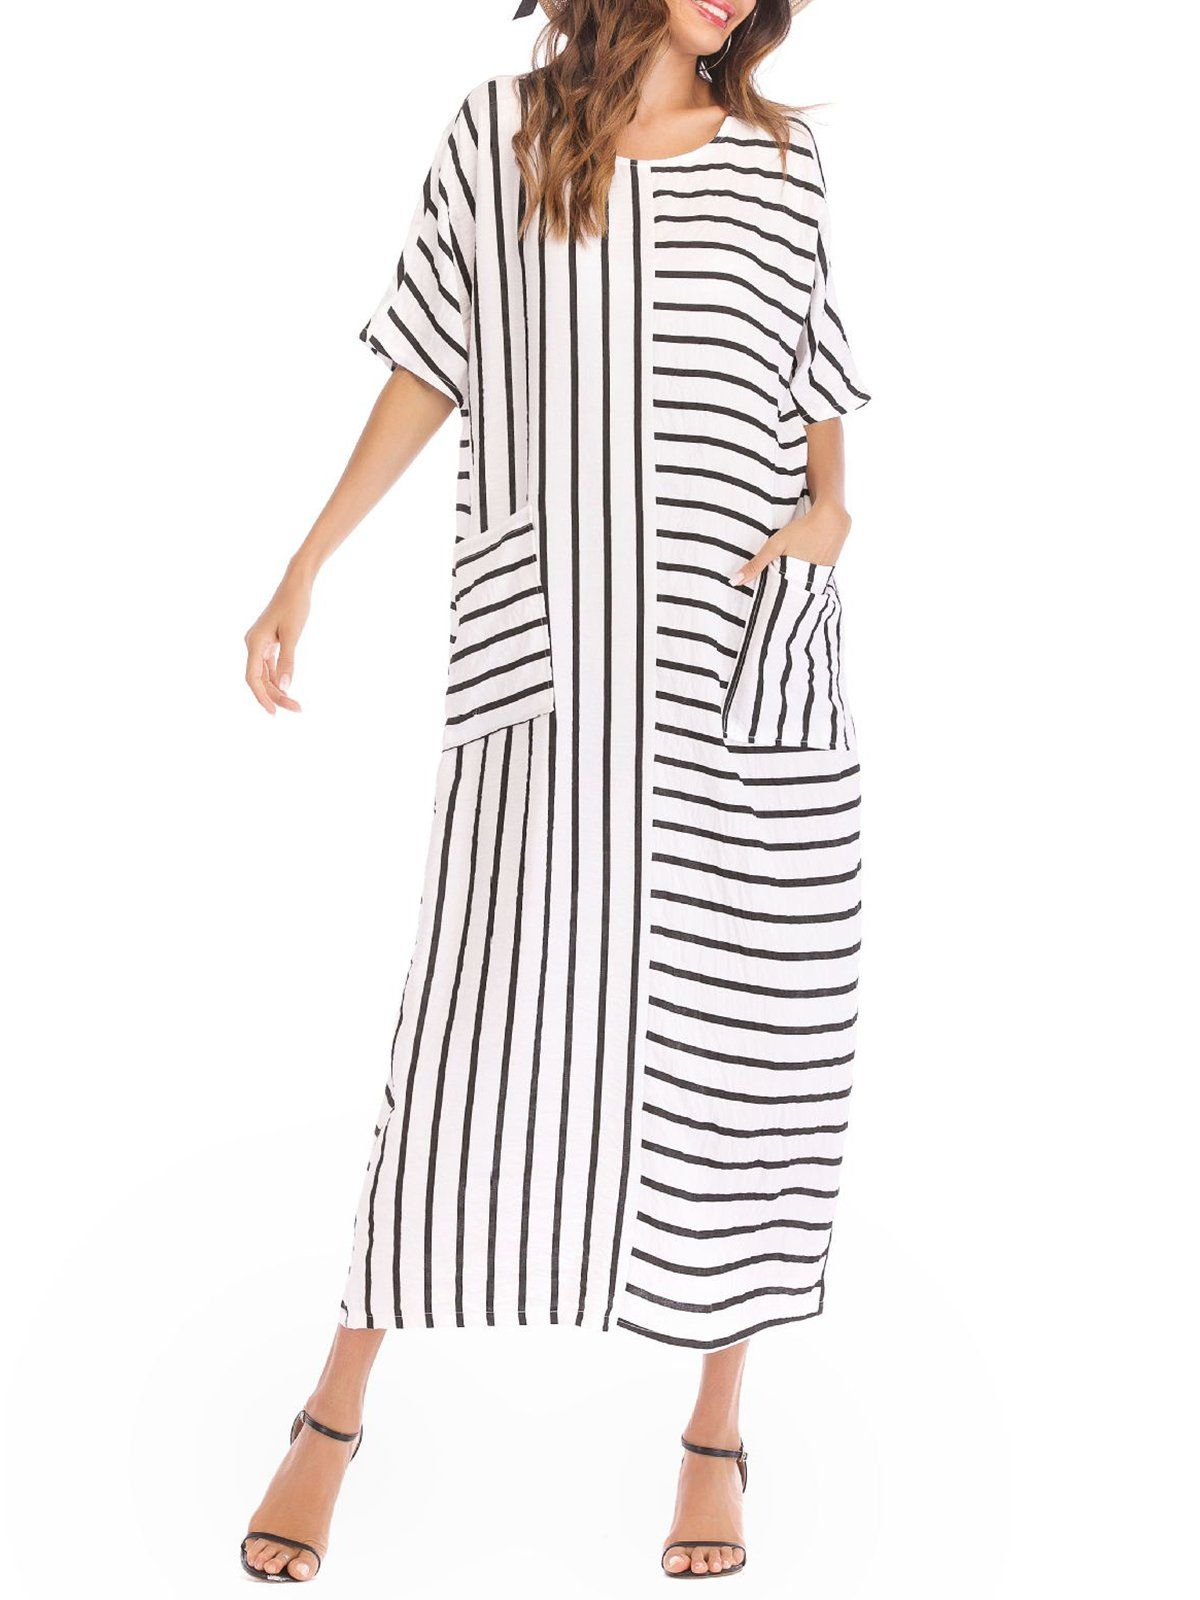 7daa9664cd White Striped Casual Pockets Plus Size Linen Dress in 2019